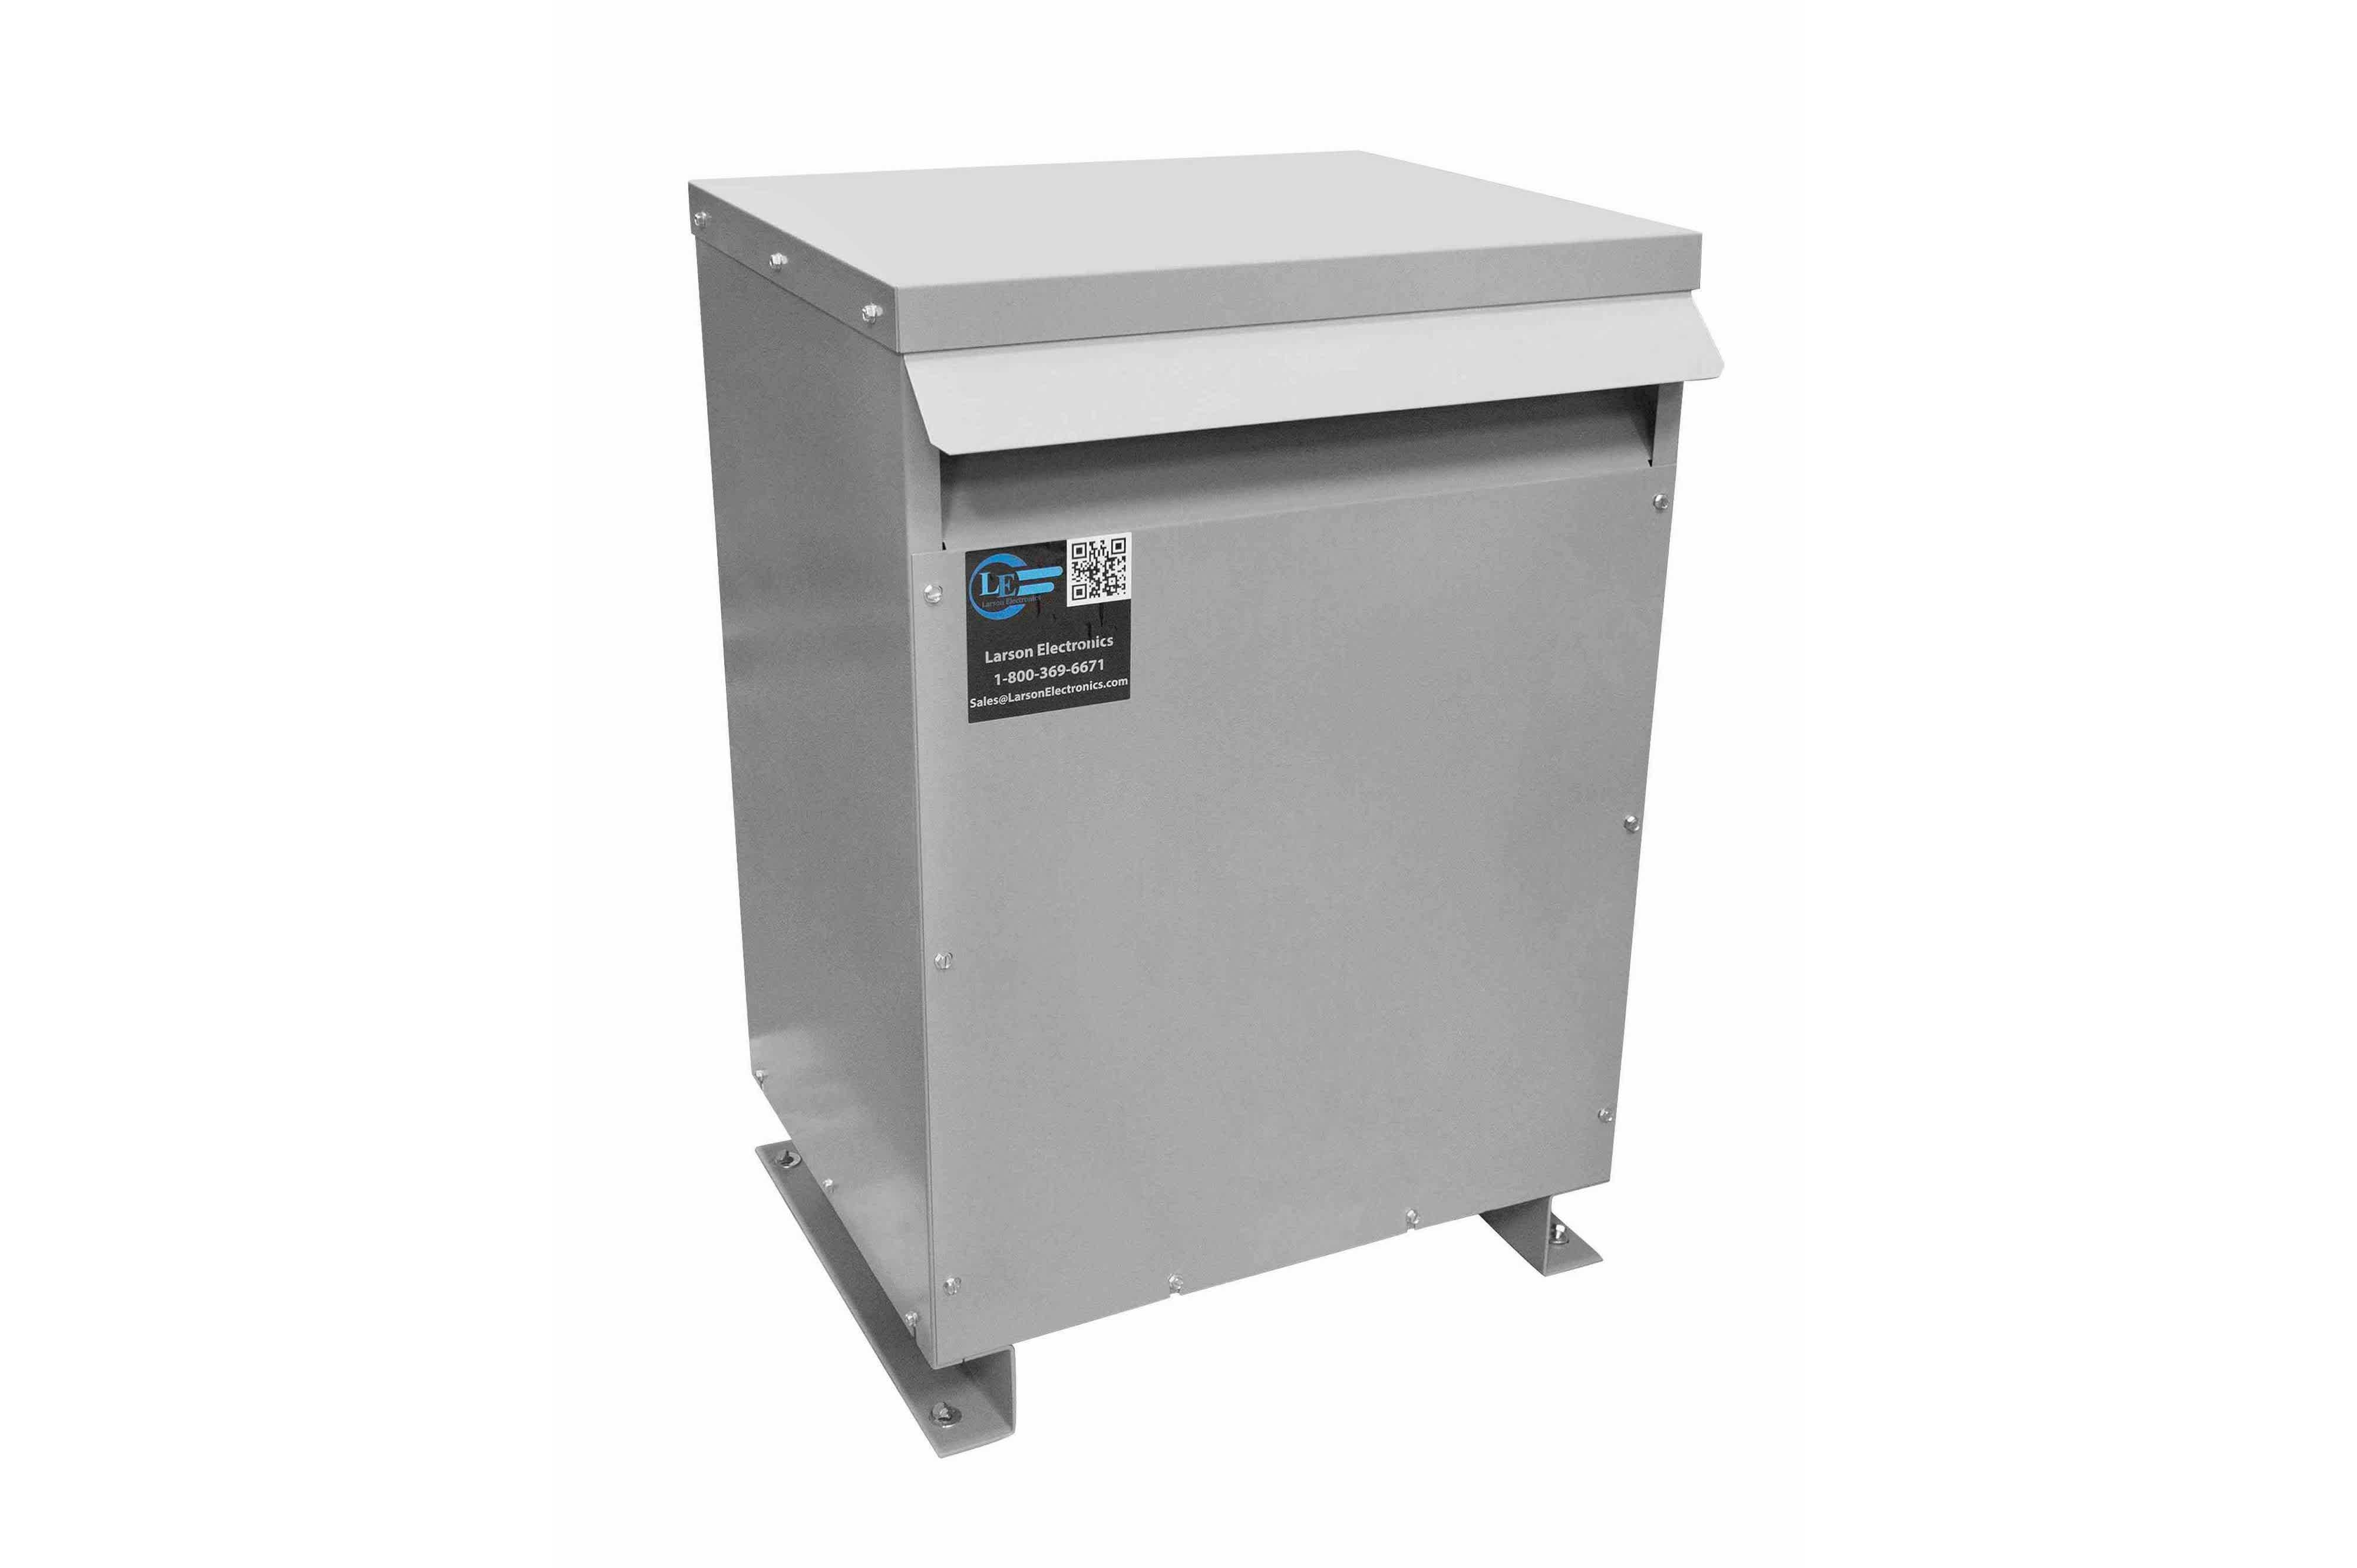 32.5 kVA 3PH Isolation Transformer, 400V Wye Primary, 240V/120 Delta Secondary, N3R, Ventilated, 60 Hz